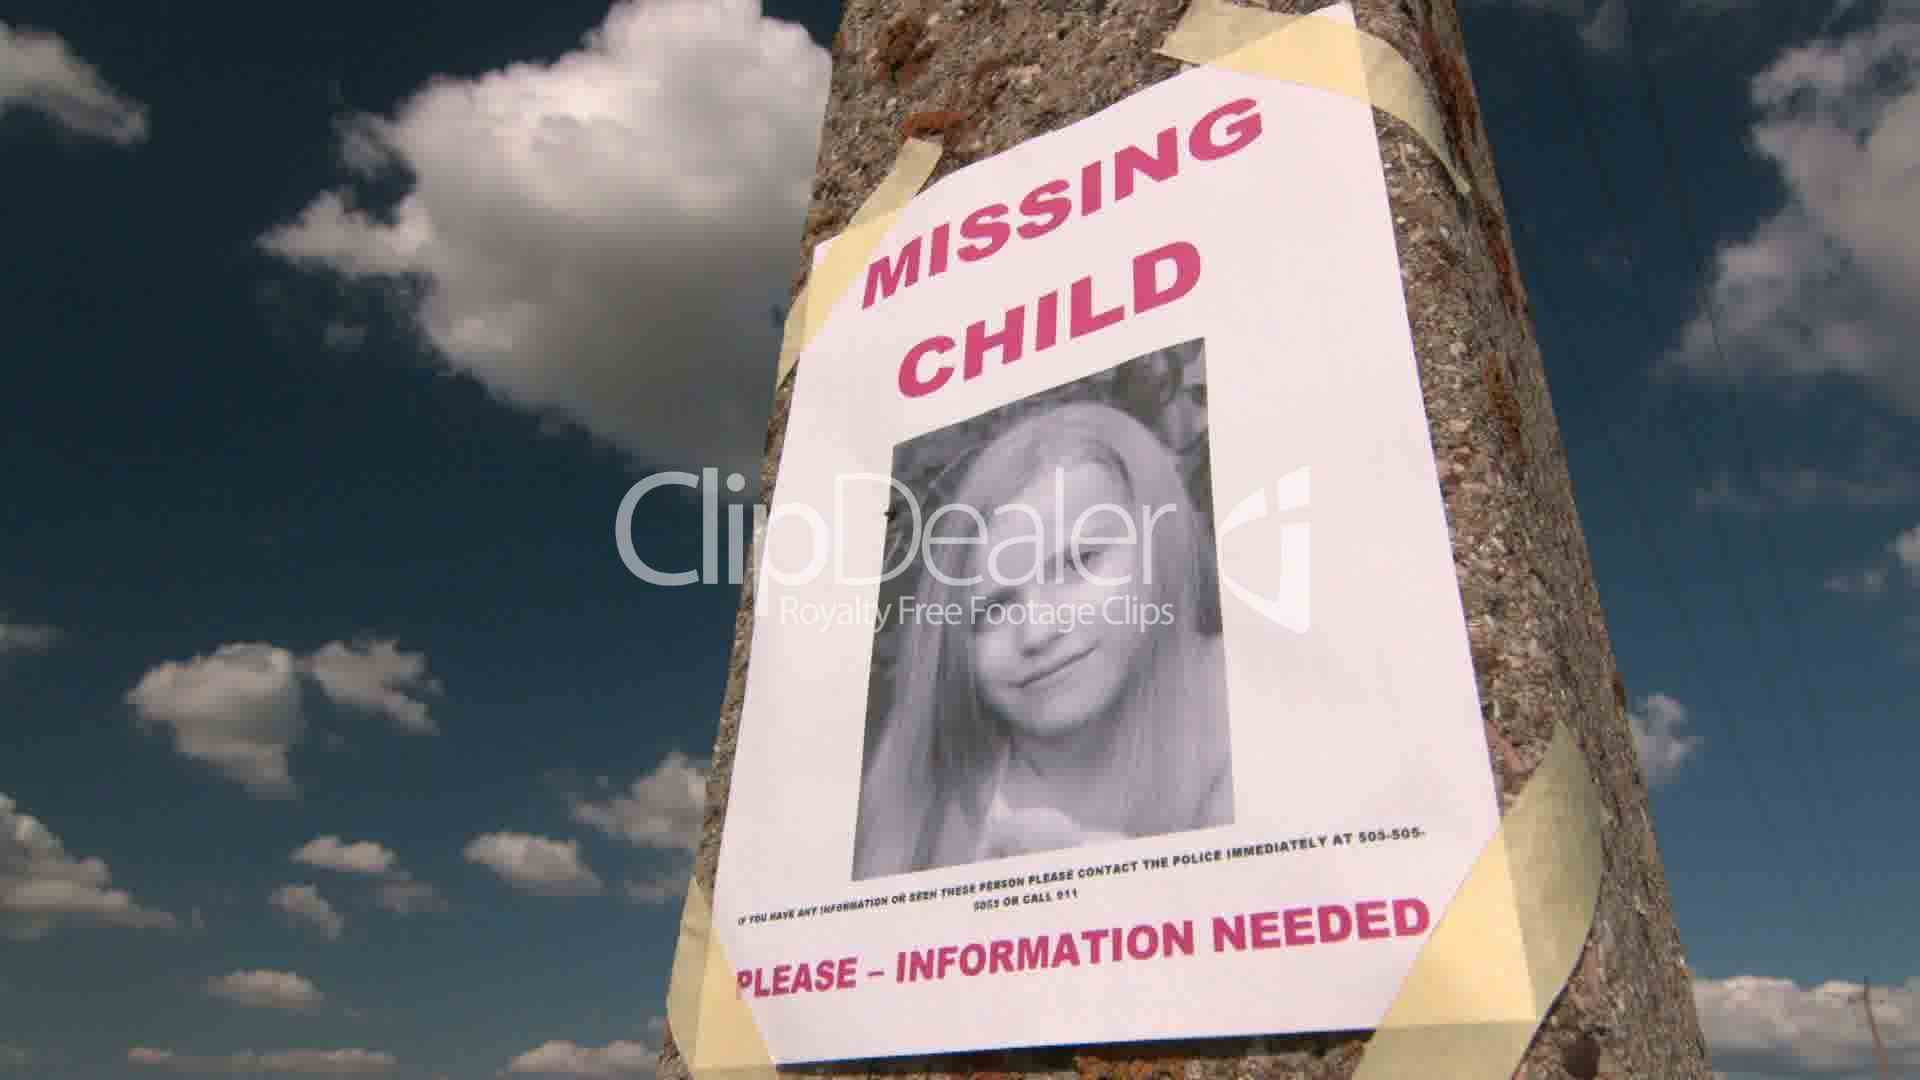 Missing person poster with photo of little girl Royaltyfree video